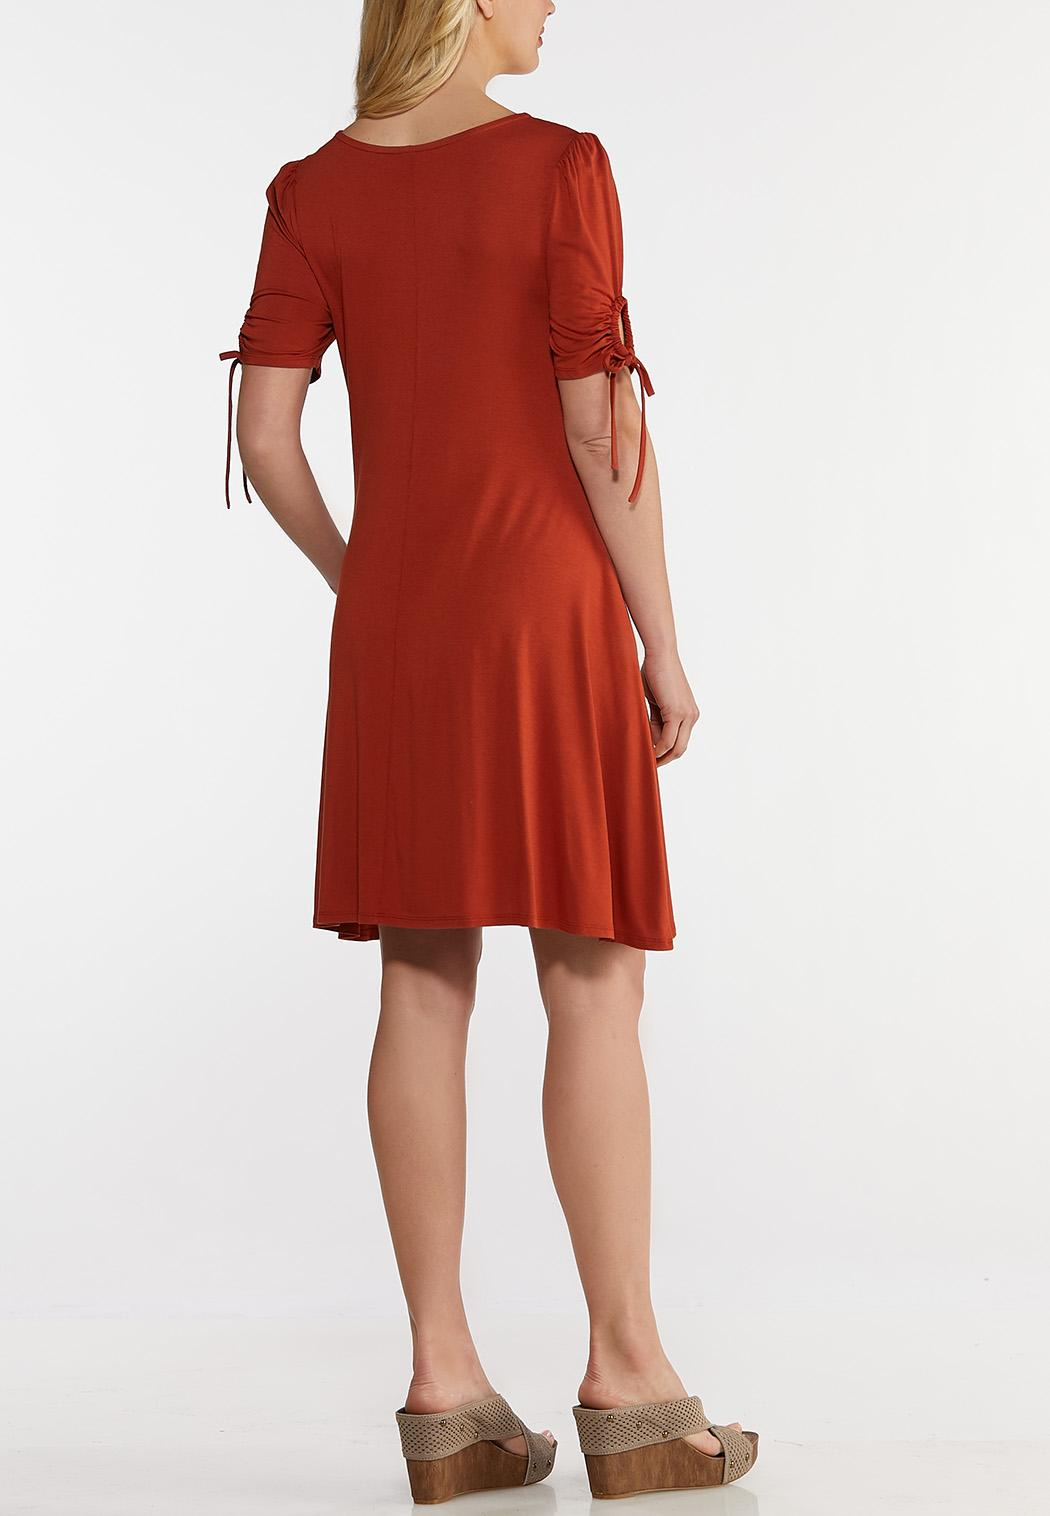 Drawstring Tie Sleeve Dress (Item #44198219)